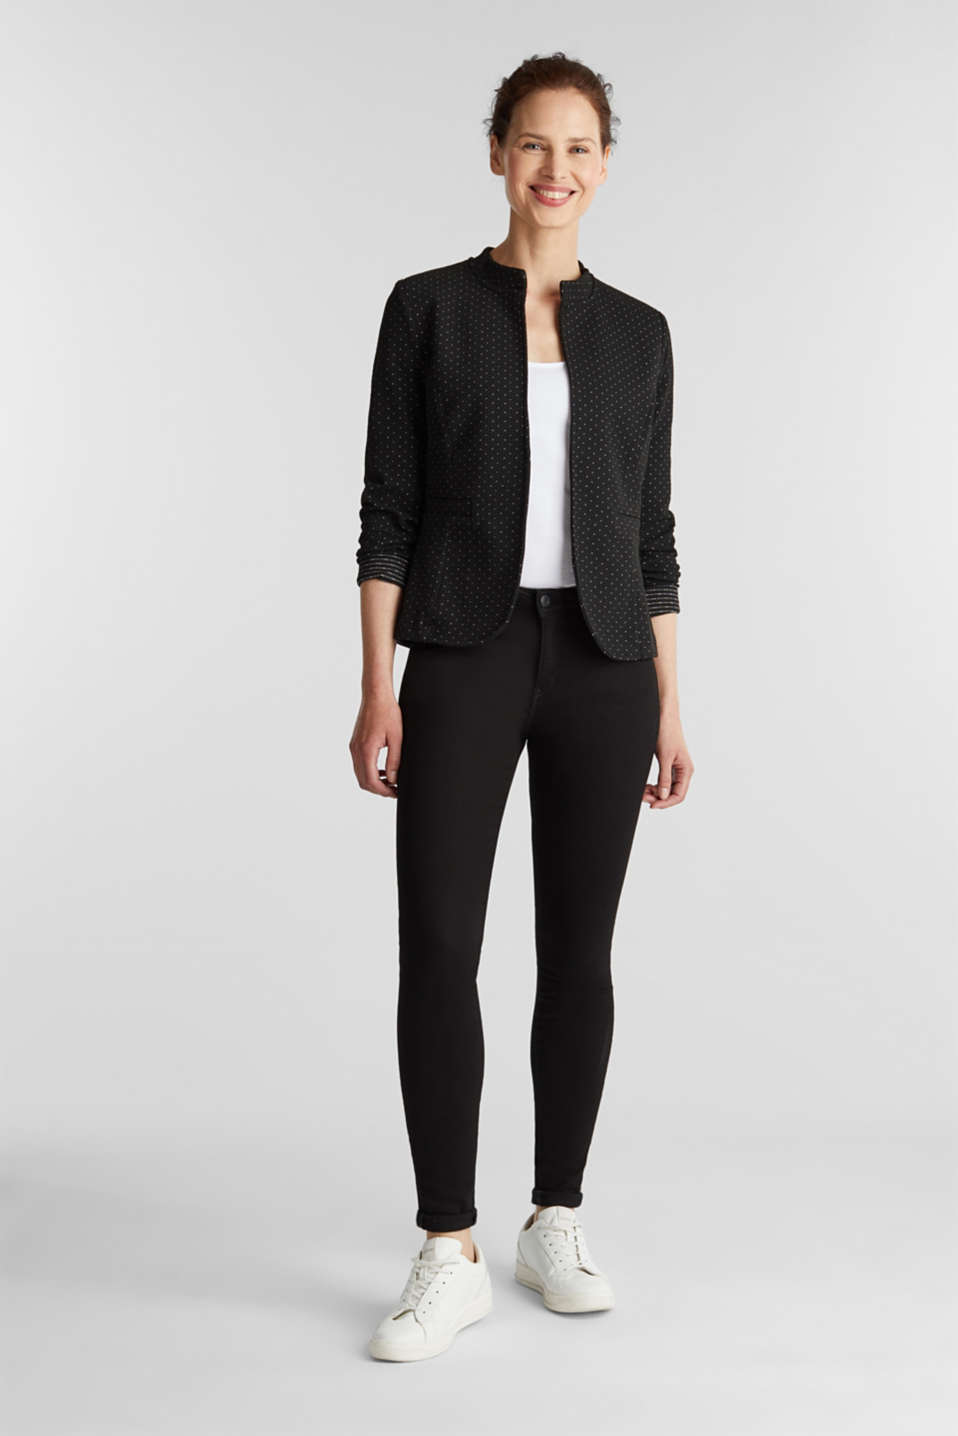 Stretch jersey blazer with polka dots, BLACK, detail image number 1